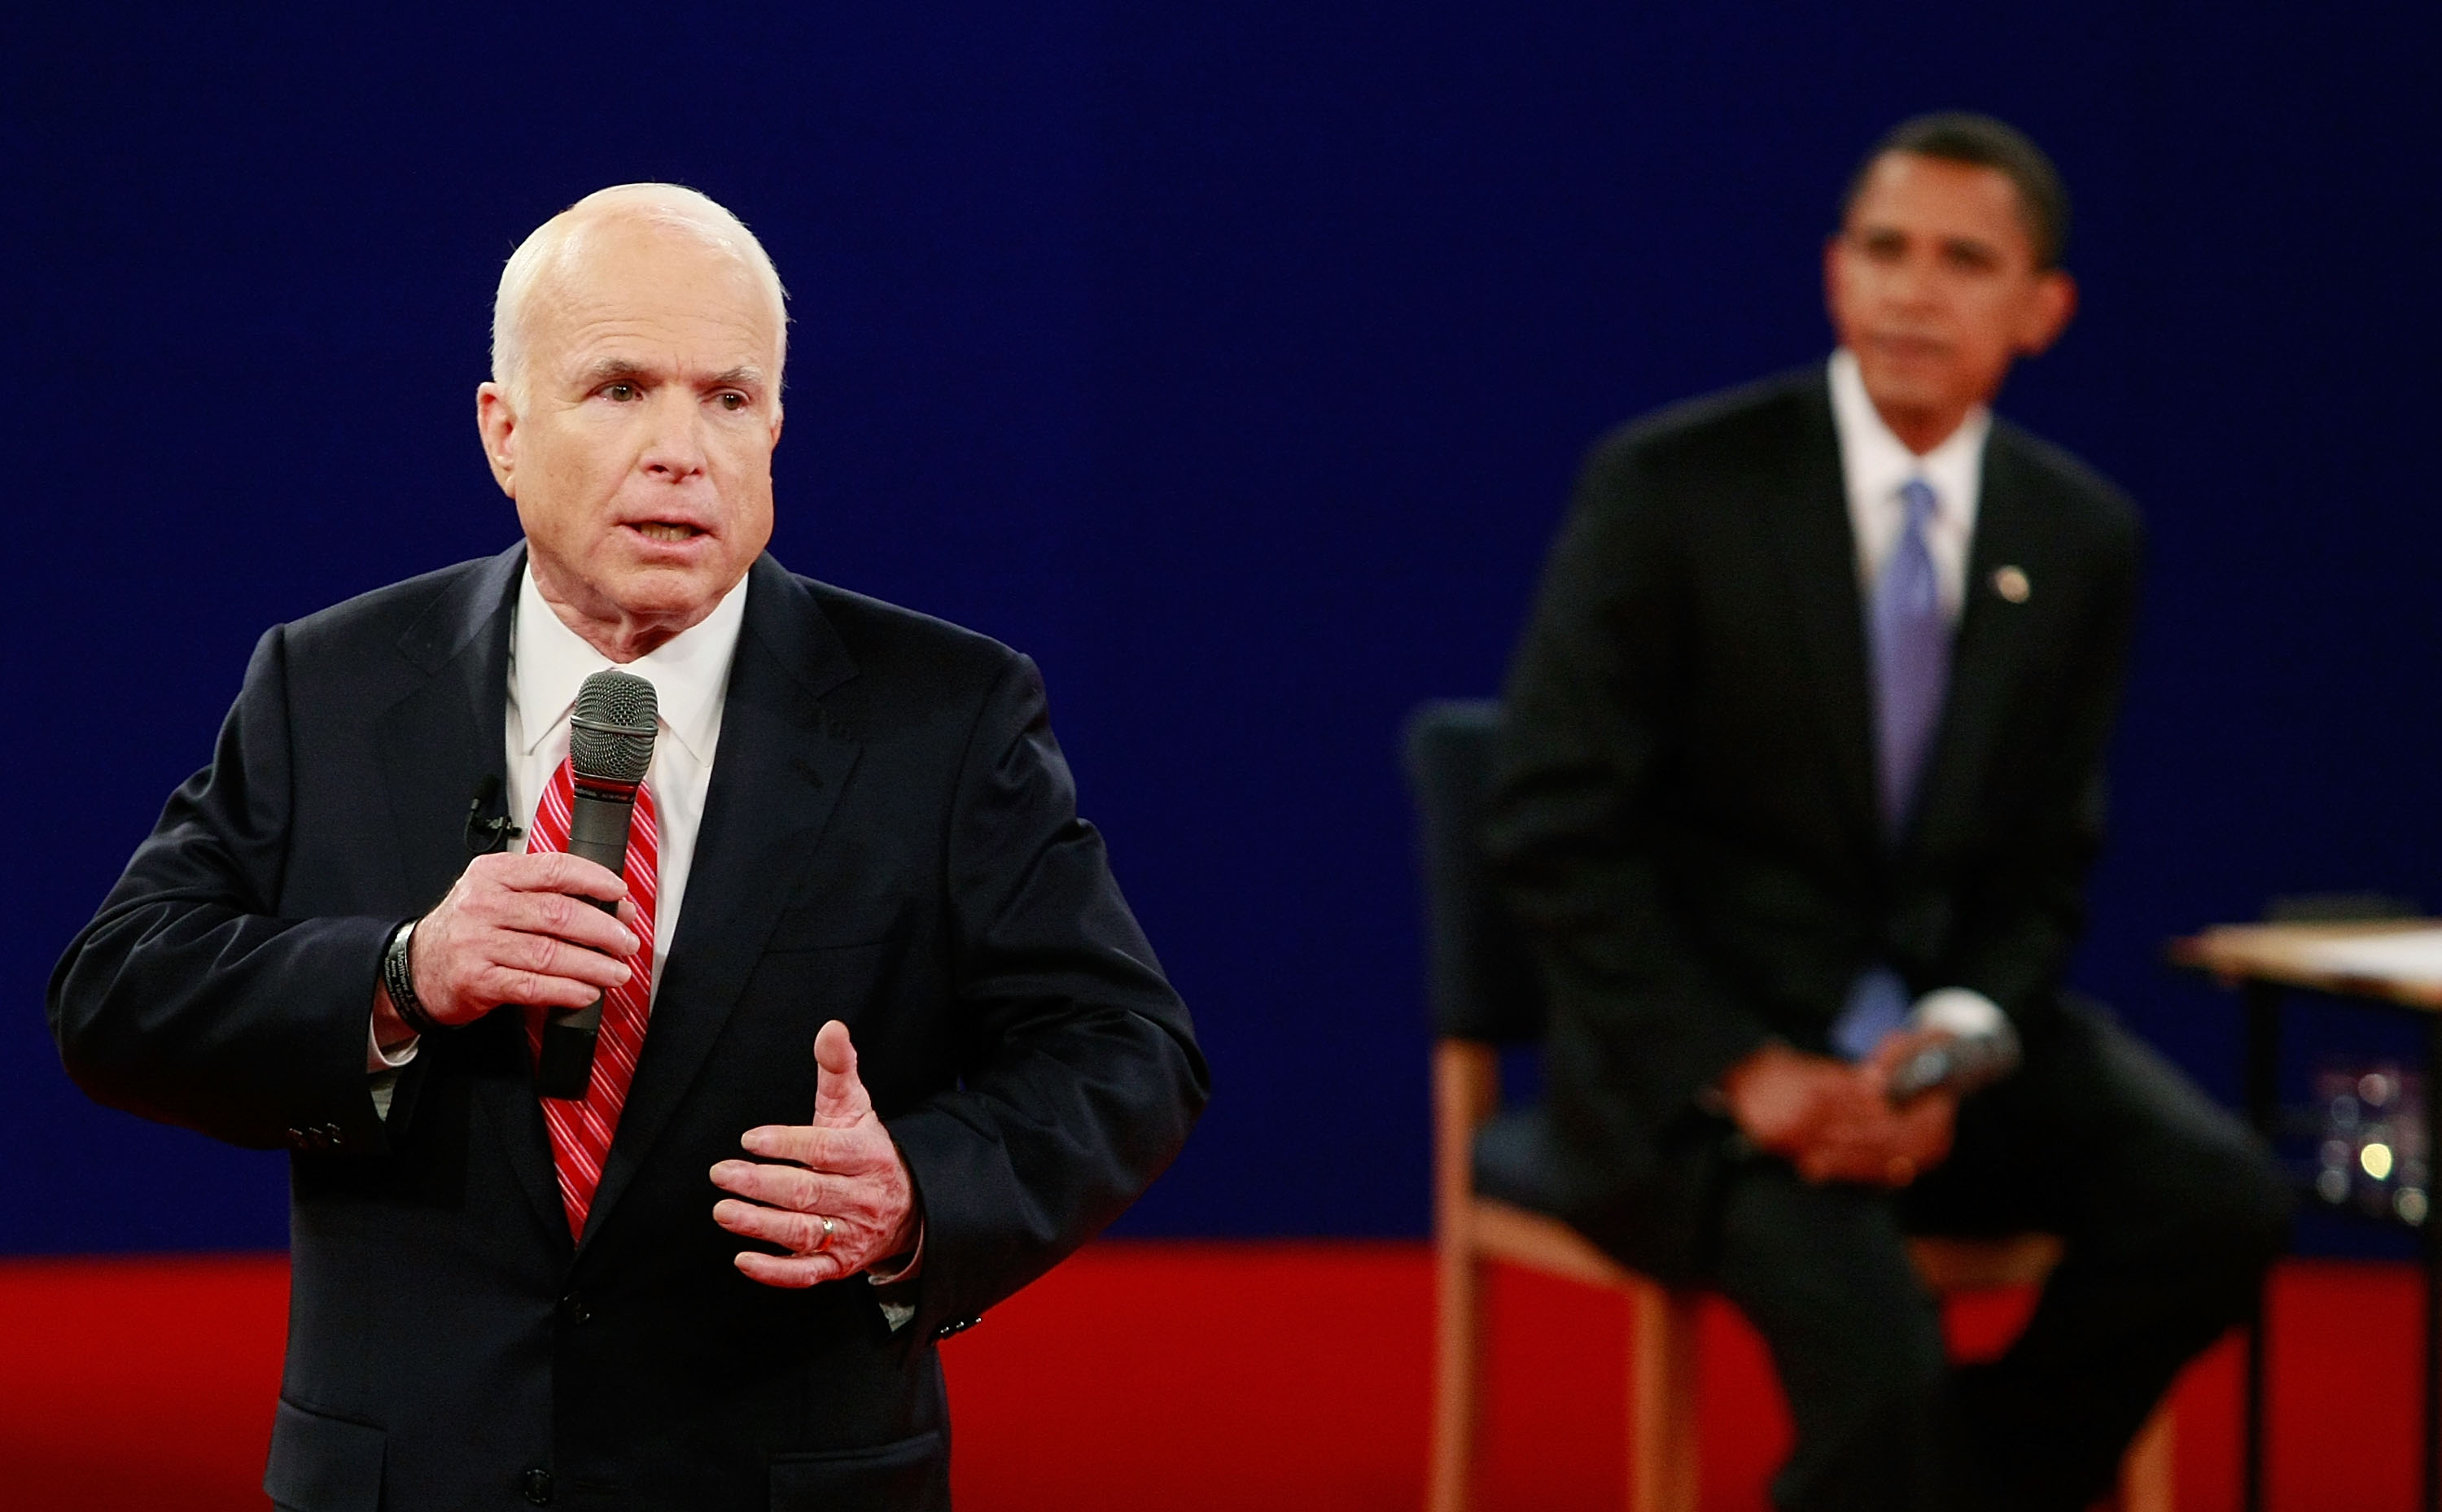 Republican presidential candidate Sen. John McCain, R-Ariz. left, speaks during a debate with Democratic presidential candidate Sen. Barack Obama, D-Ill. McCain lost the general election to Obama in 2008. (Mark Wilson/Getty Images)